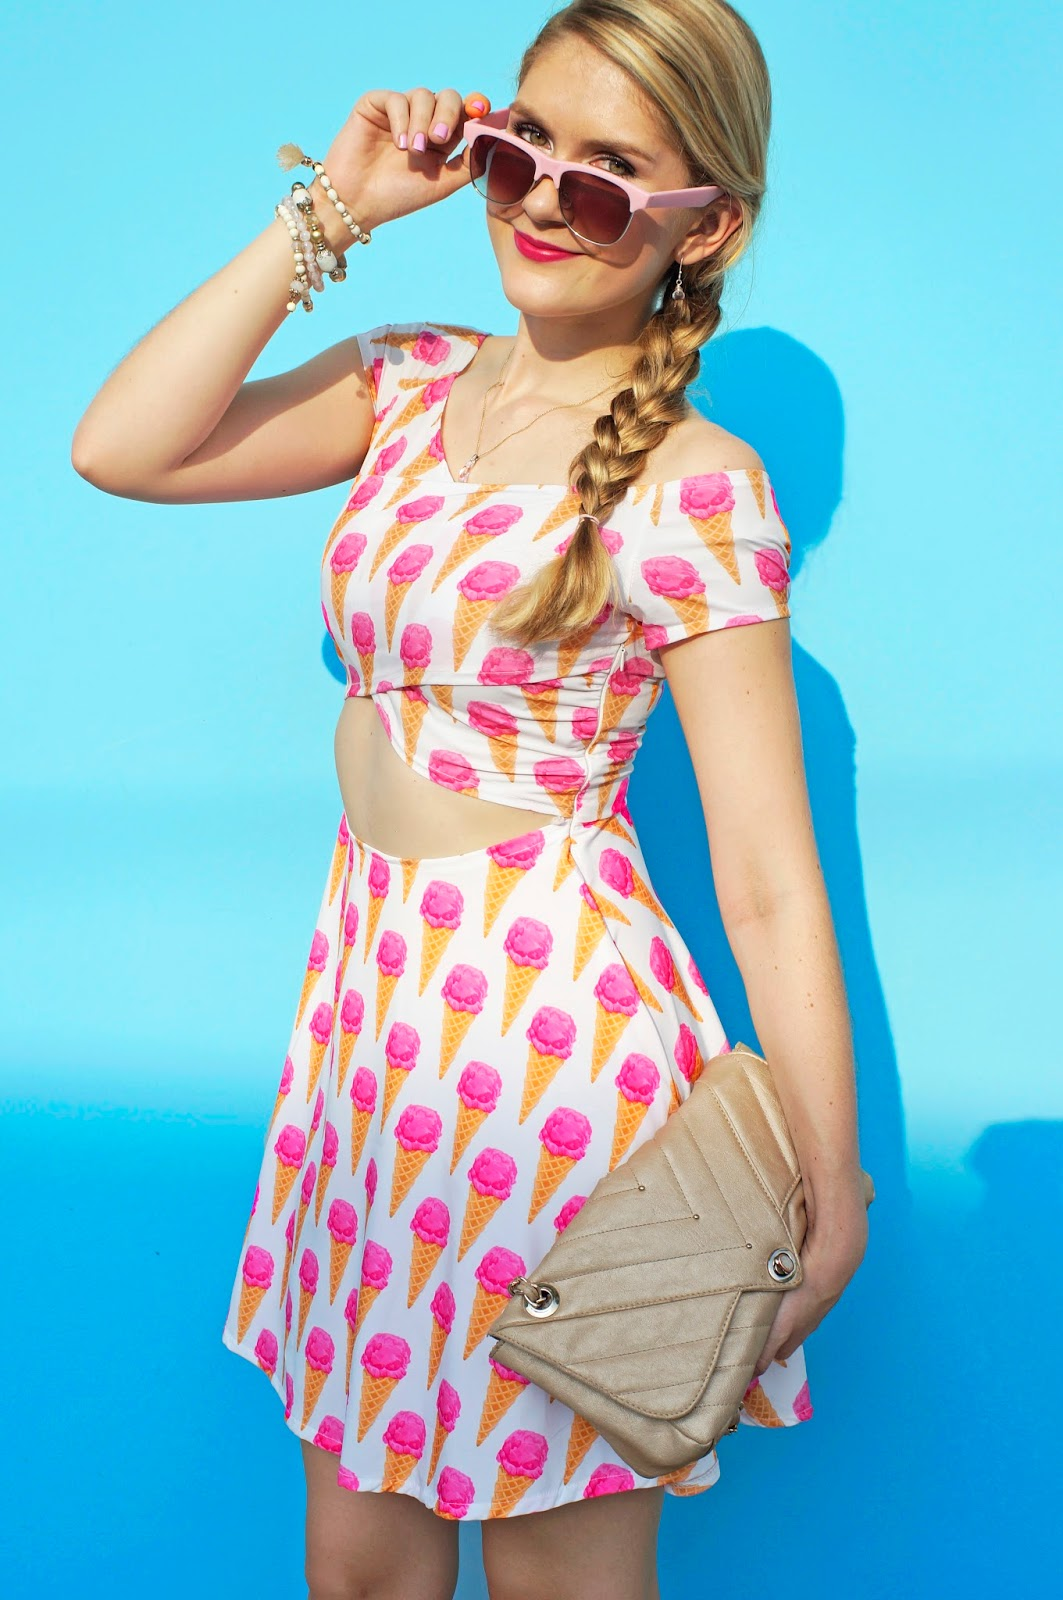 Adorable Ice cream printed dress for Summer!